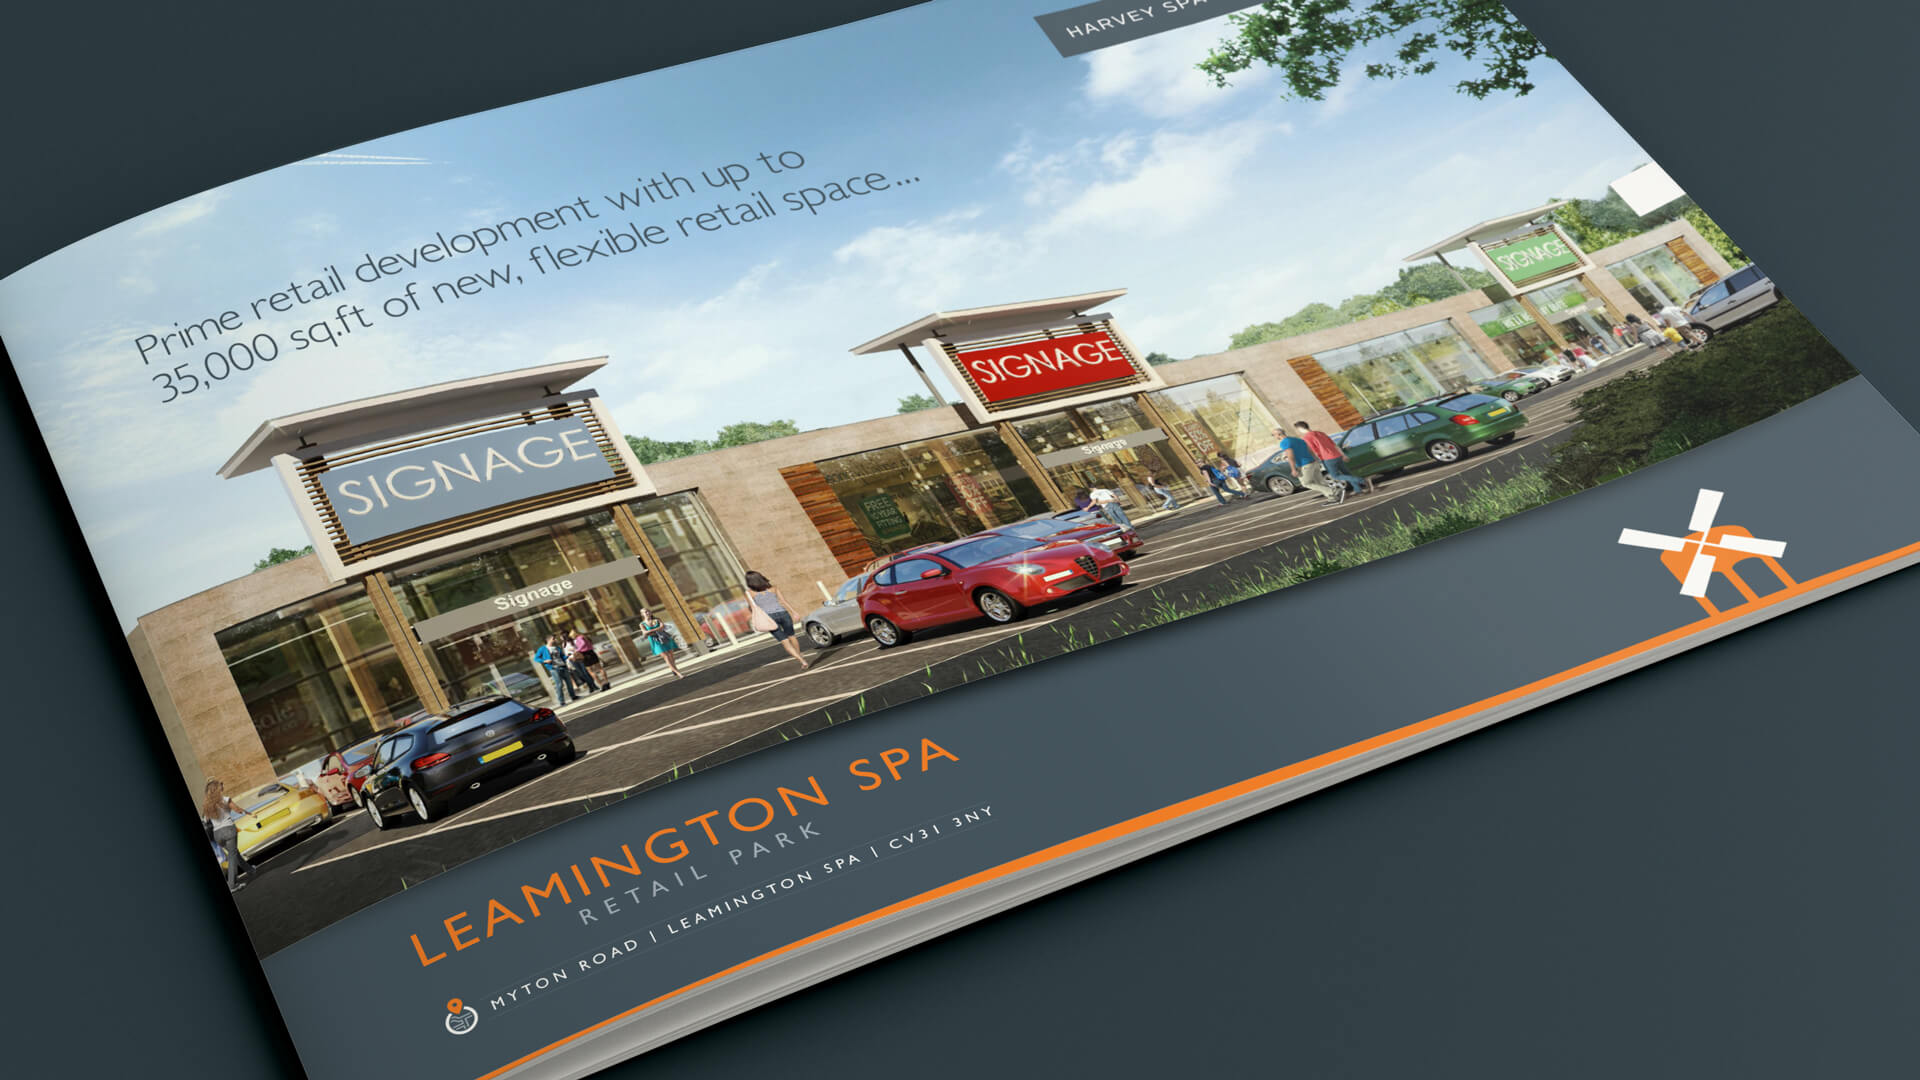 Leamington Spa Retail Park Marketing Brochure